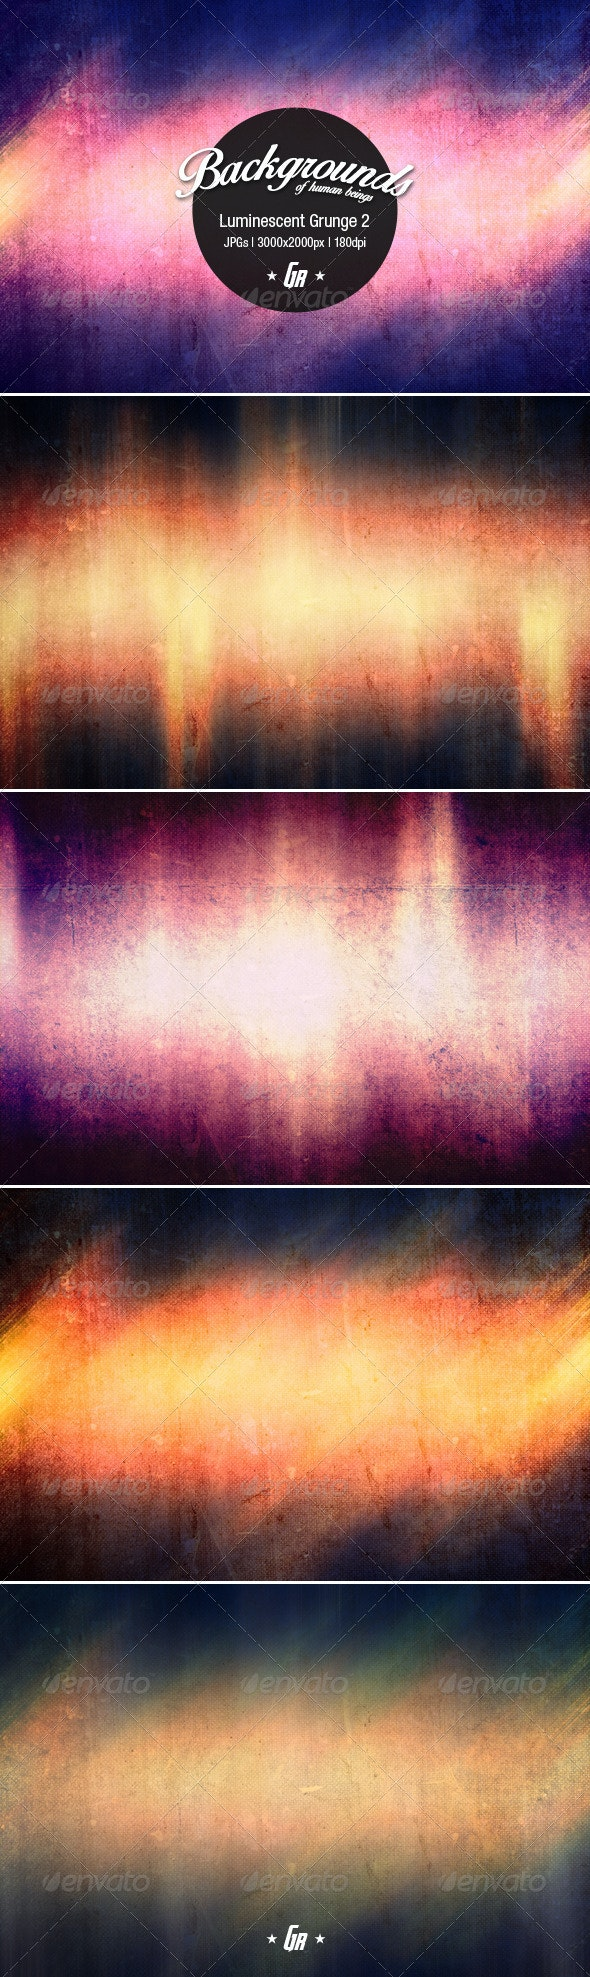 Luminescent Grunge Backgrounds 2 - Abstract Backgrounds